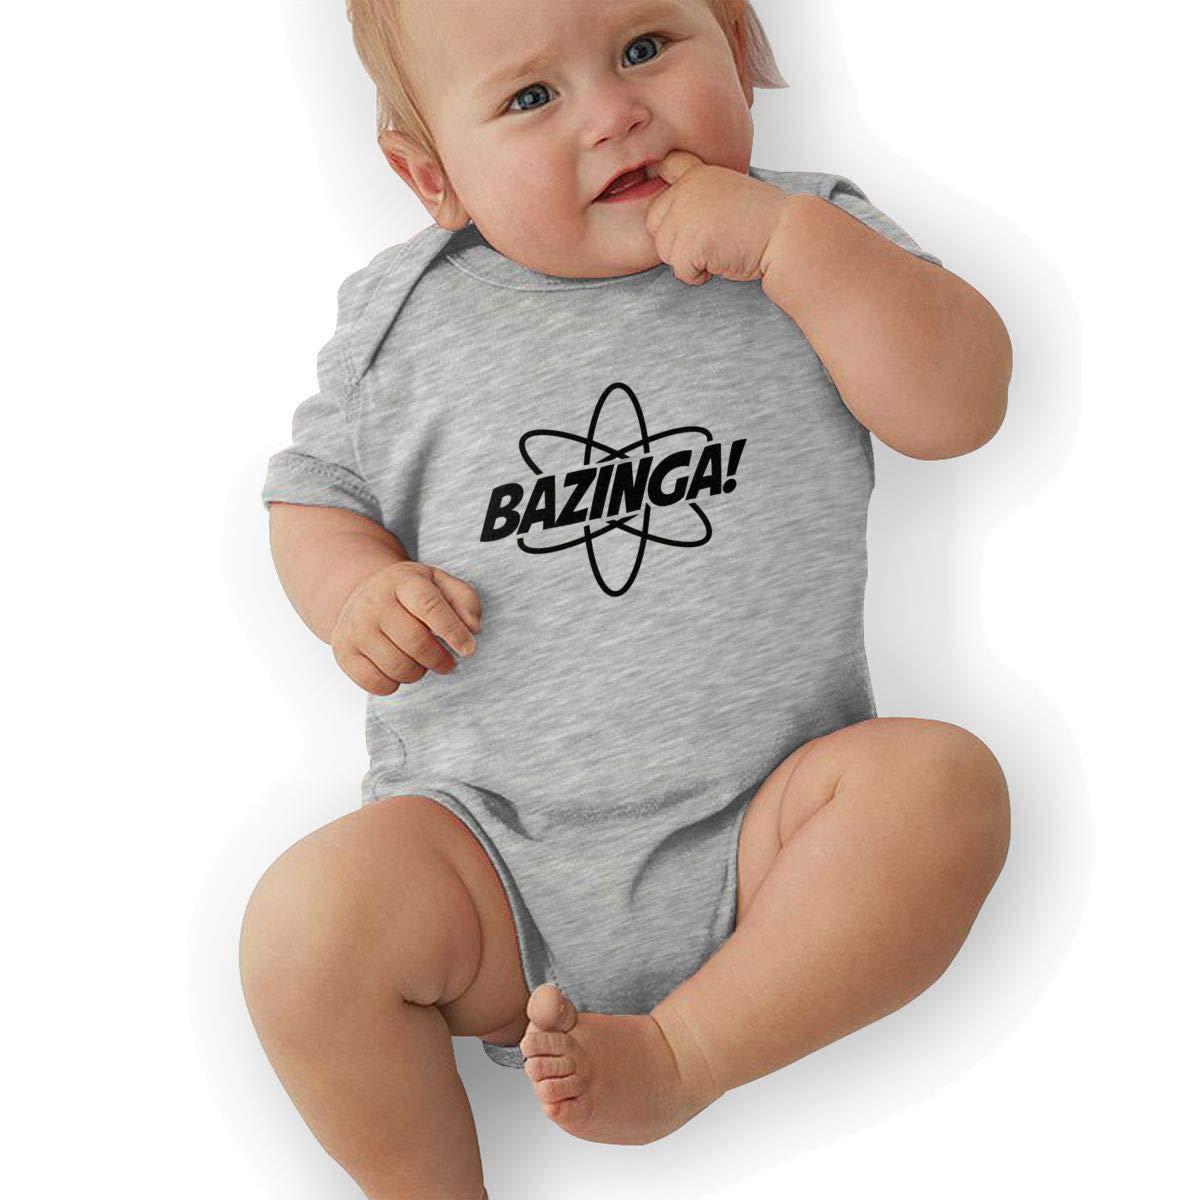 Manlee Bazinga Newborn Infant Toddler Baby Girls Boys Bodysuit Short Sleeve 0-24 MonthsGray 18M